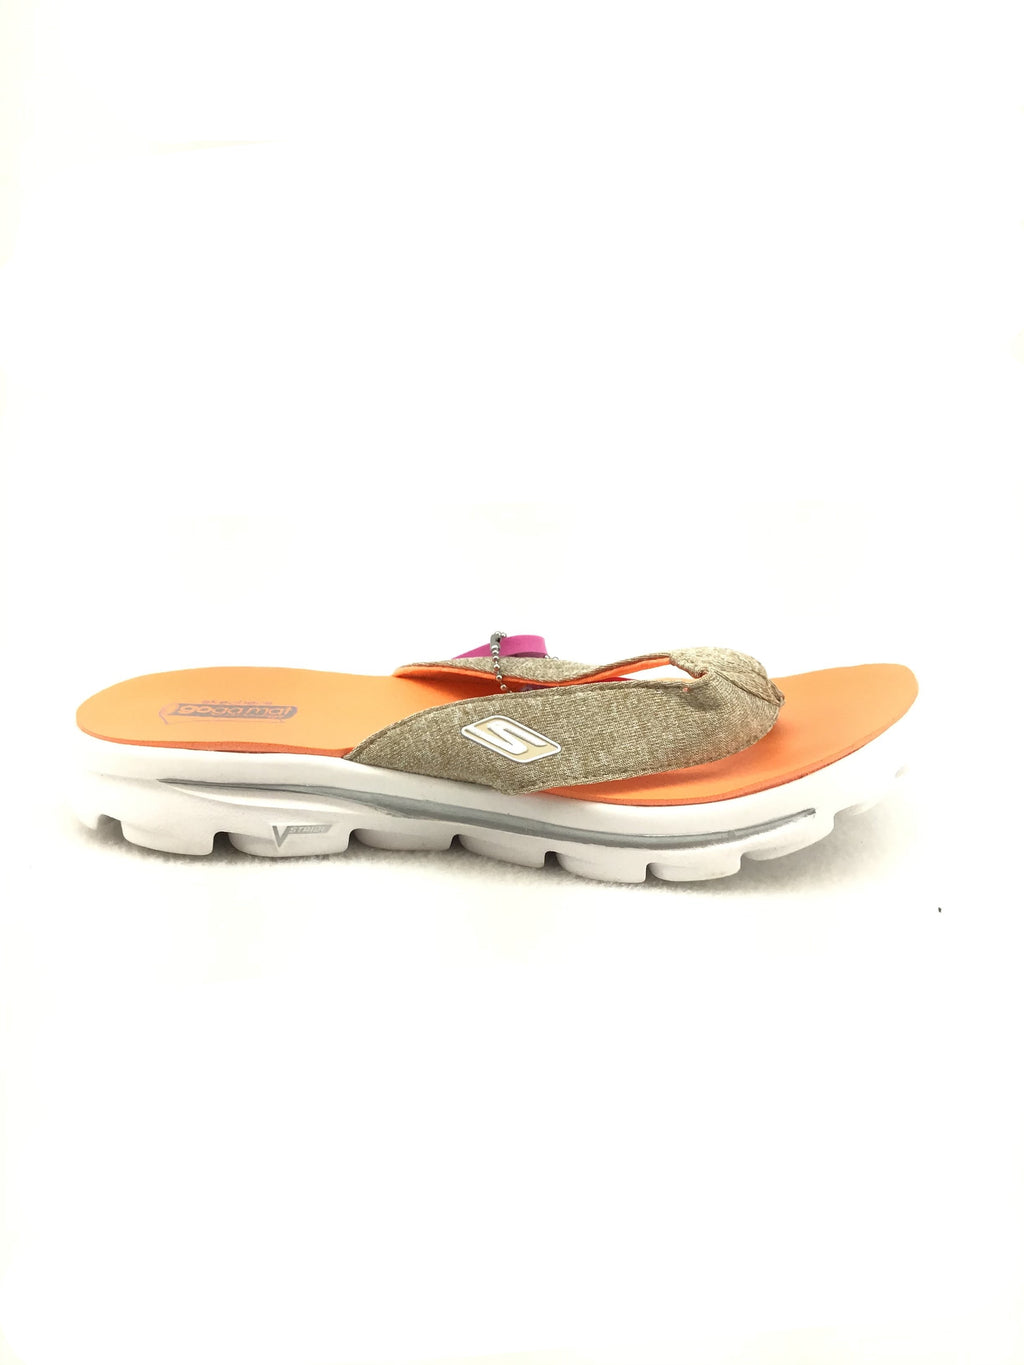 Skechers GoGo Mat Sandals Size 9